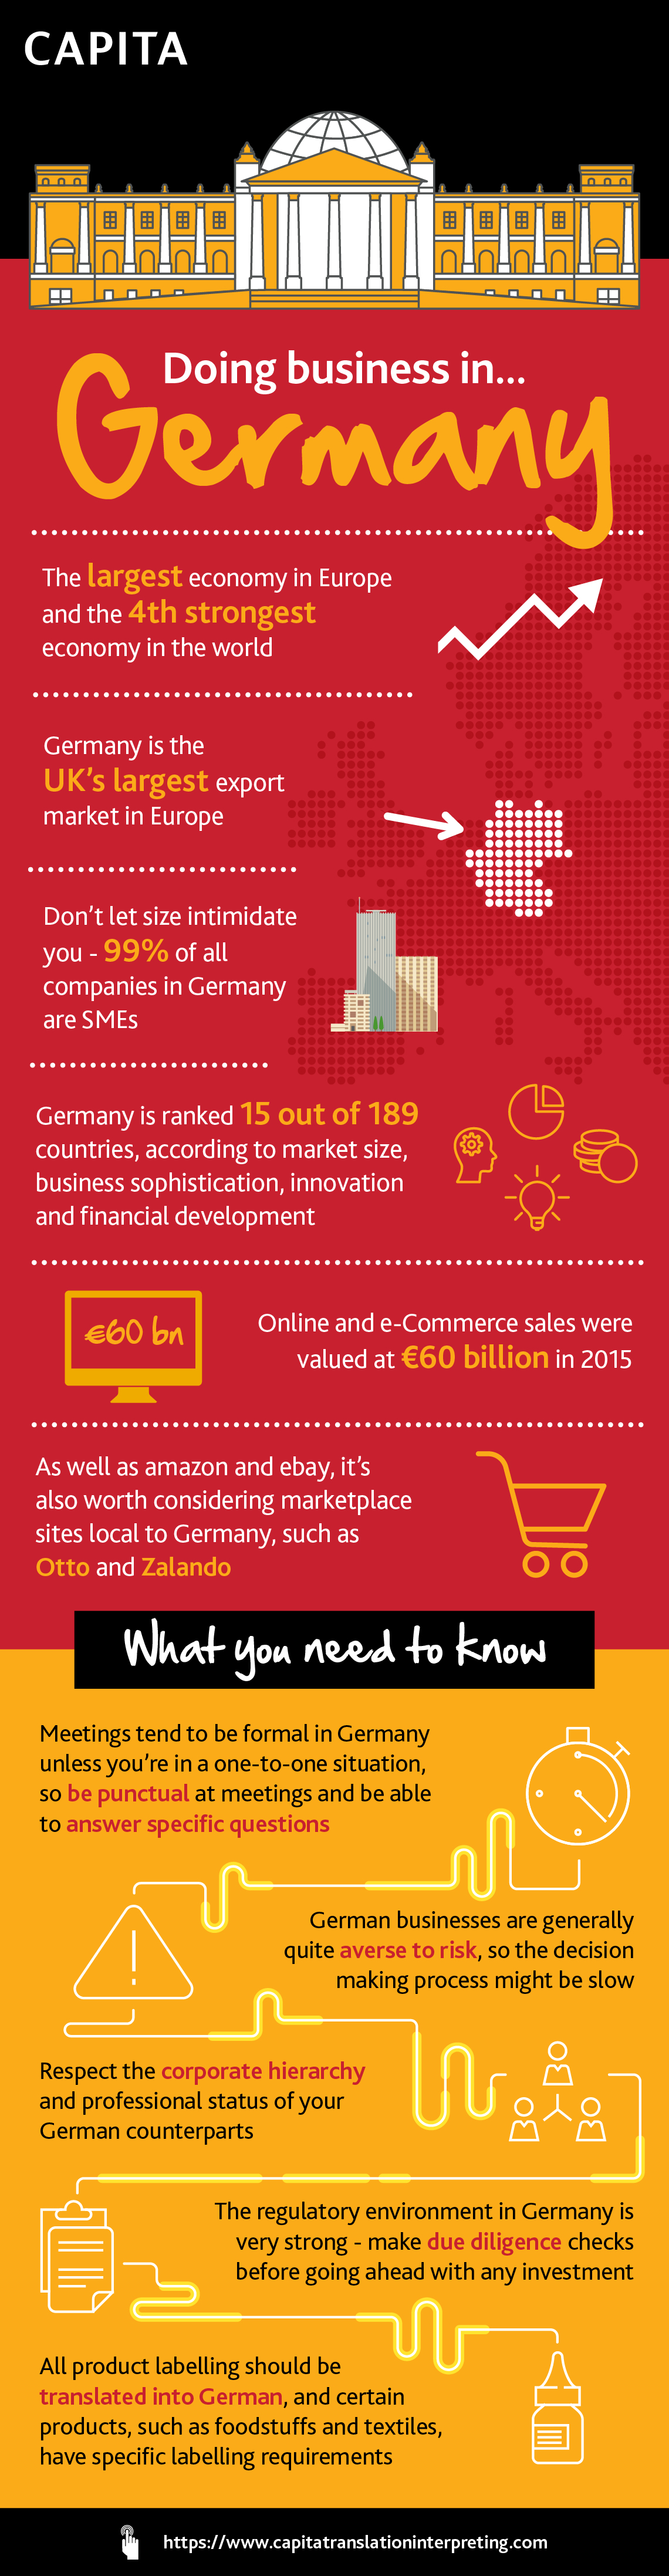 Doing business in Germany infographic